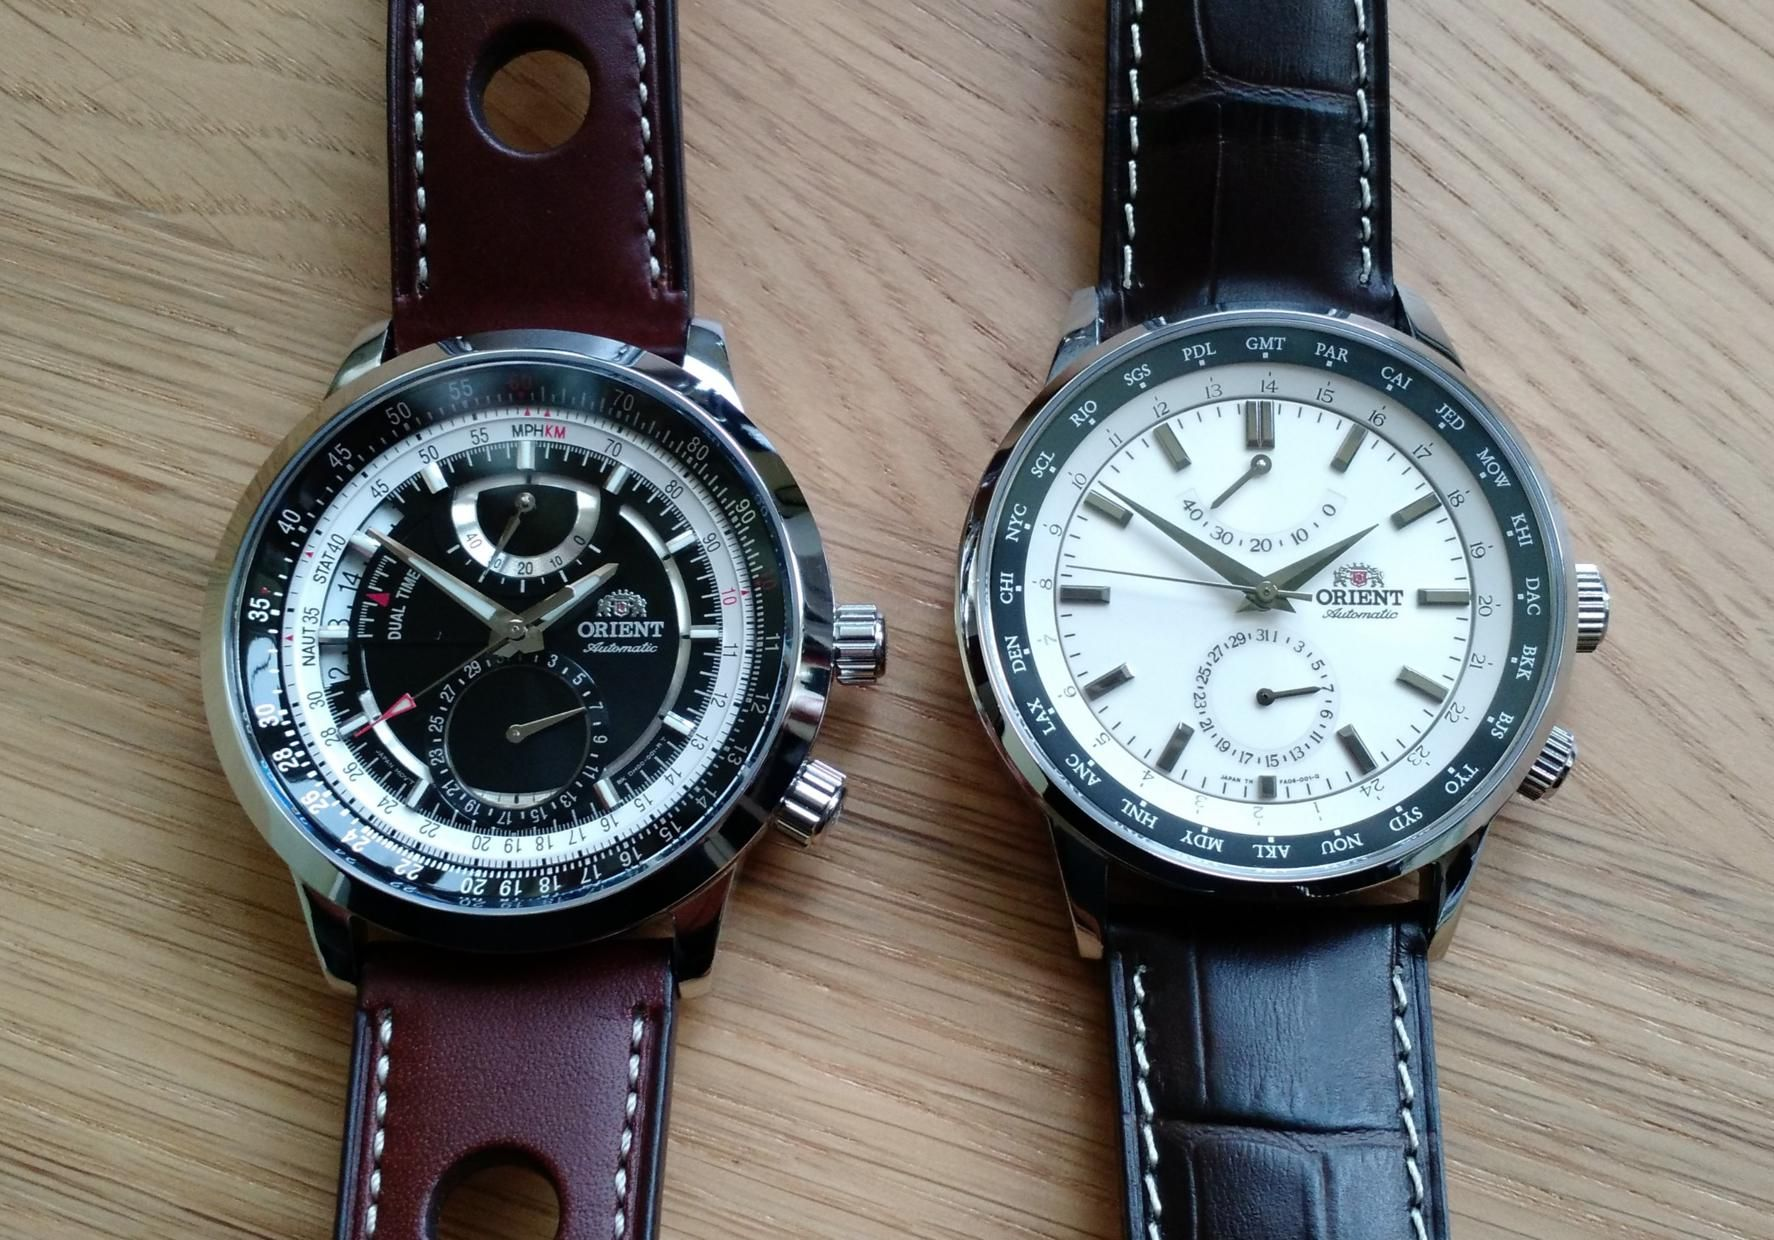 head well up ceo iwc brand watch s watches stepped release has new breitling the navtimer collection in executive kern as range reorganisation brietling watchmaker to former of and georges